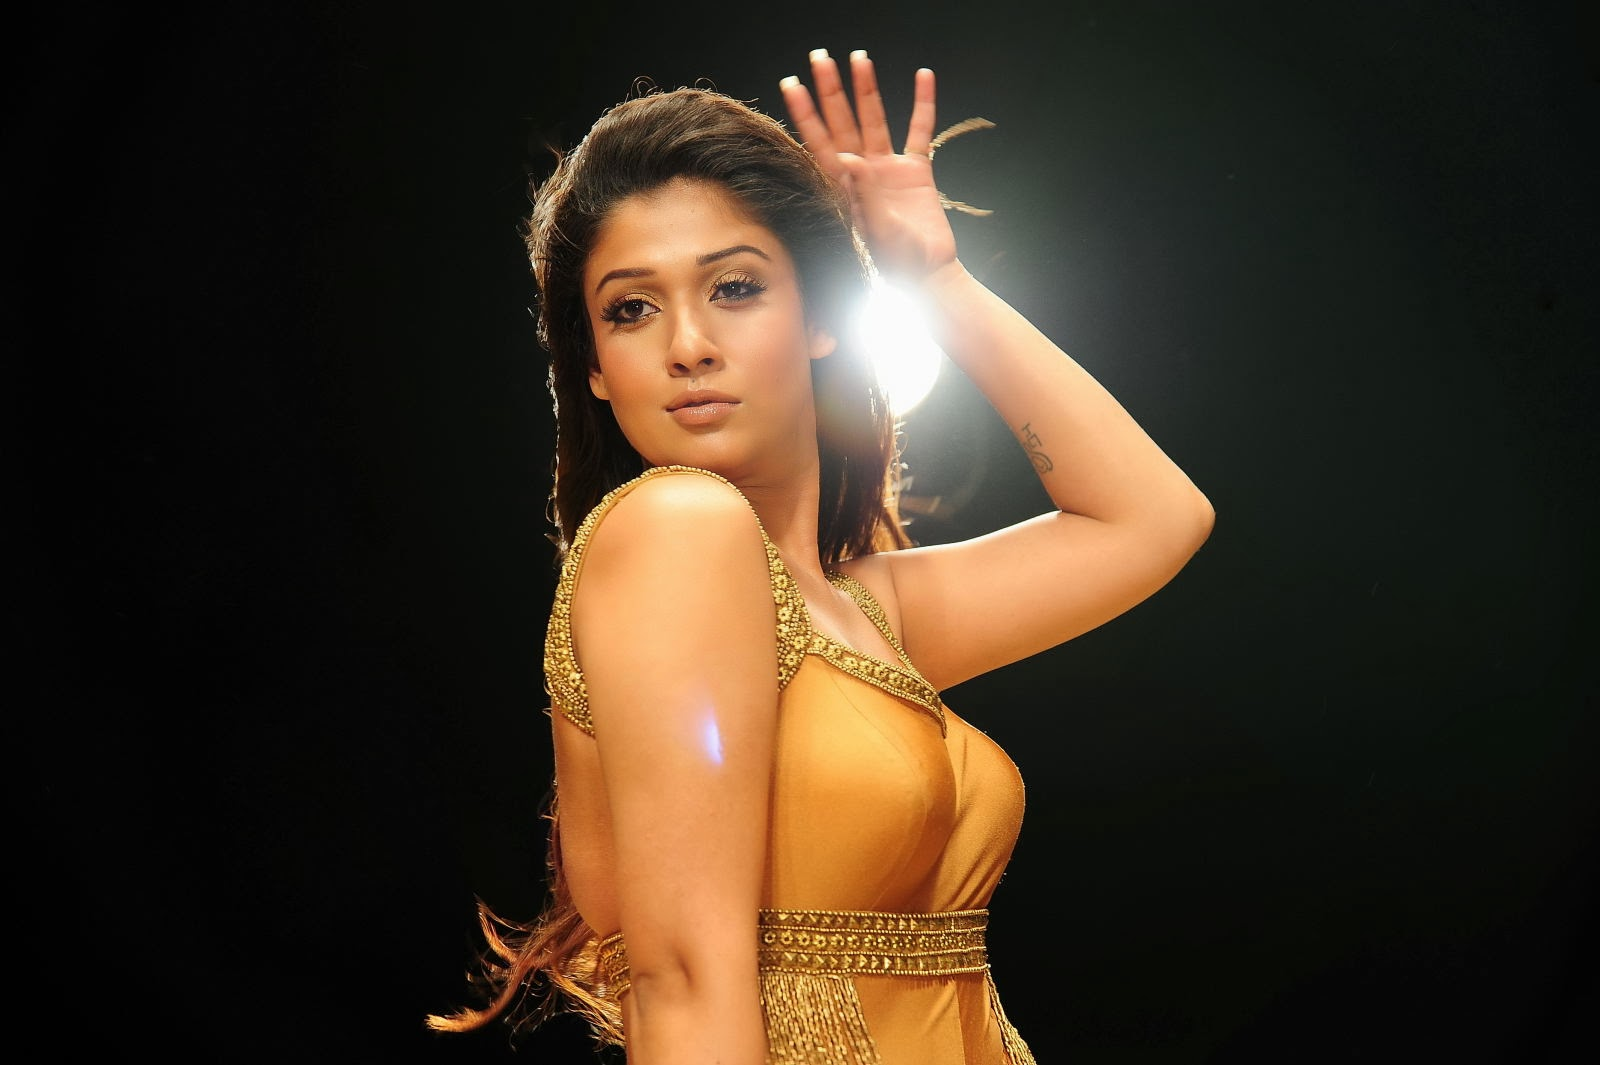 Erotic video of tamil actresses